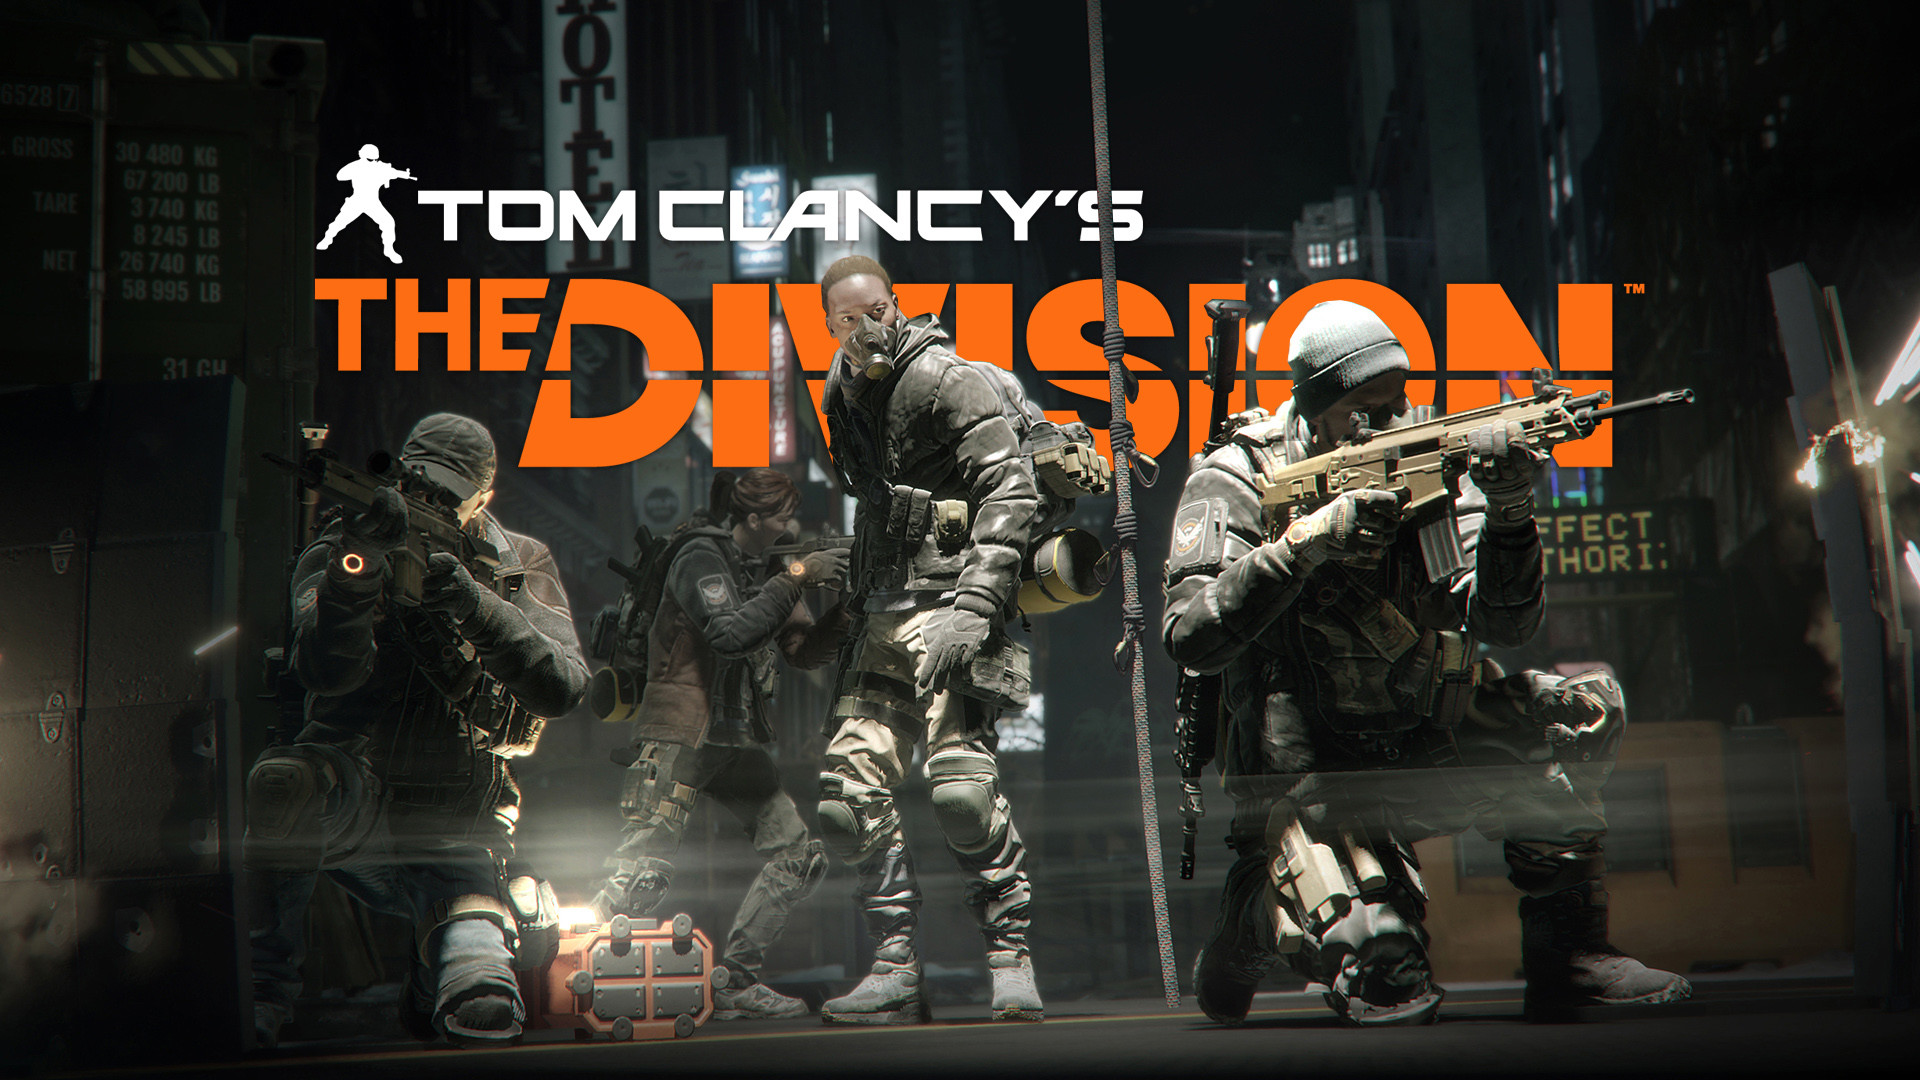 The Division Wallpaper 1920×1080 Images …